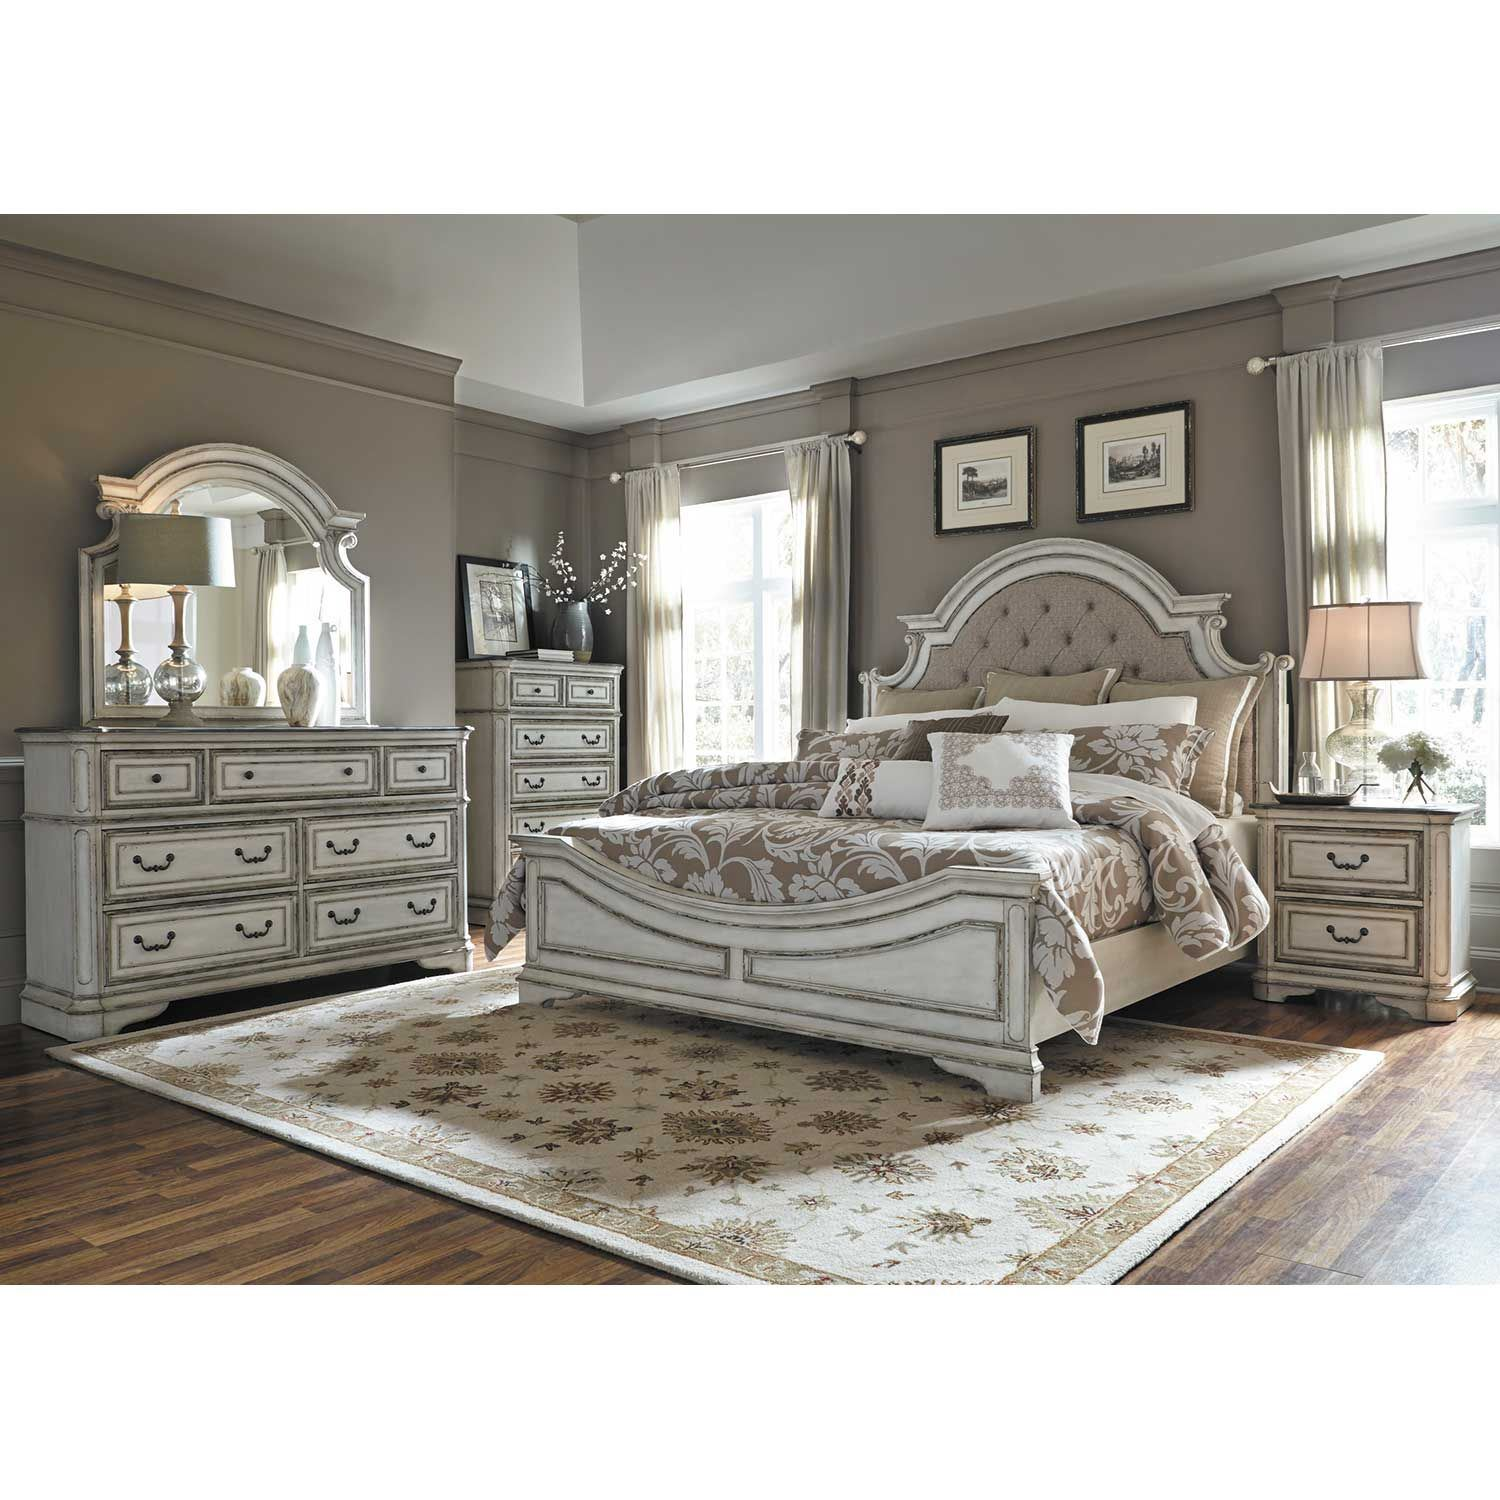 Picture of Magnolia Manor 5 Drawer Chest